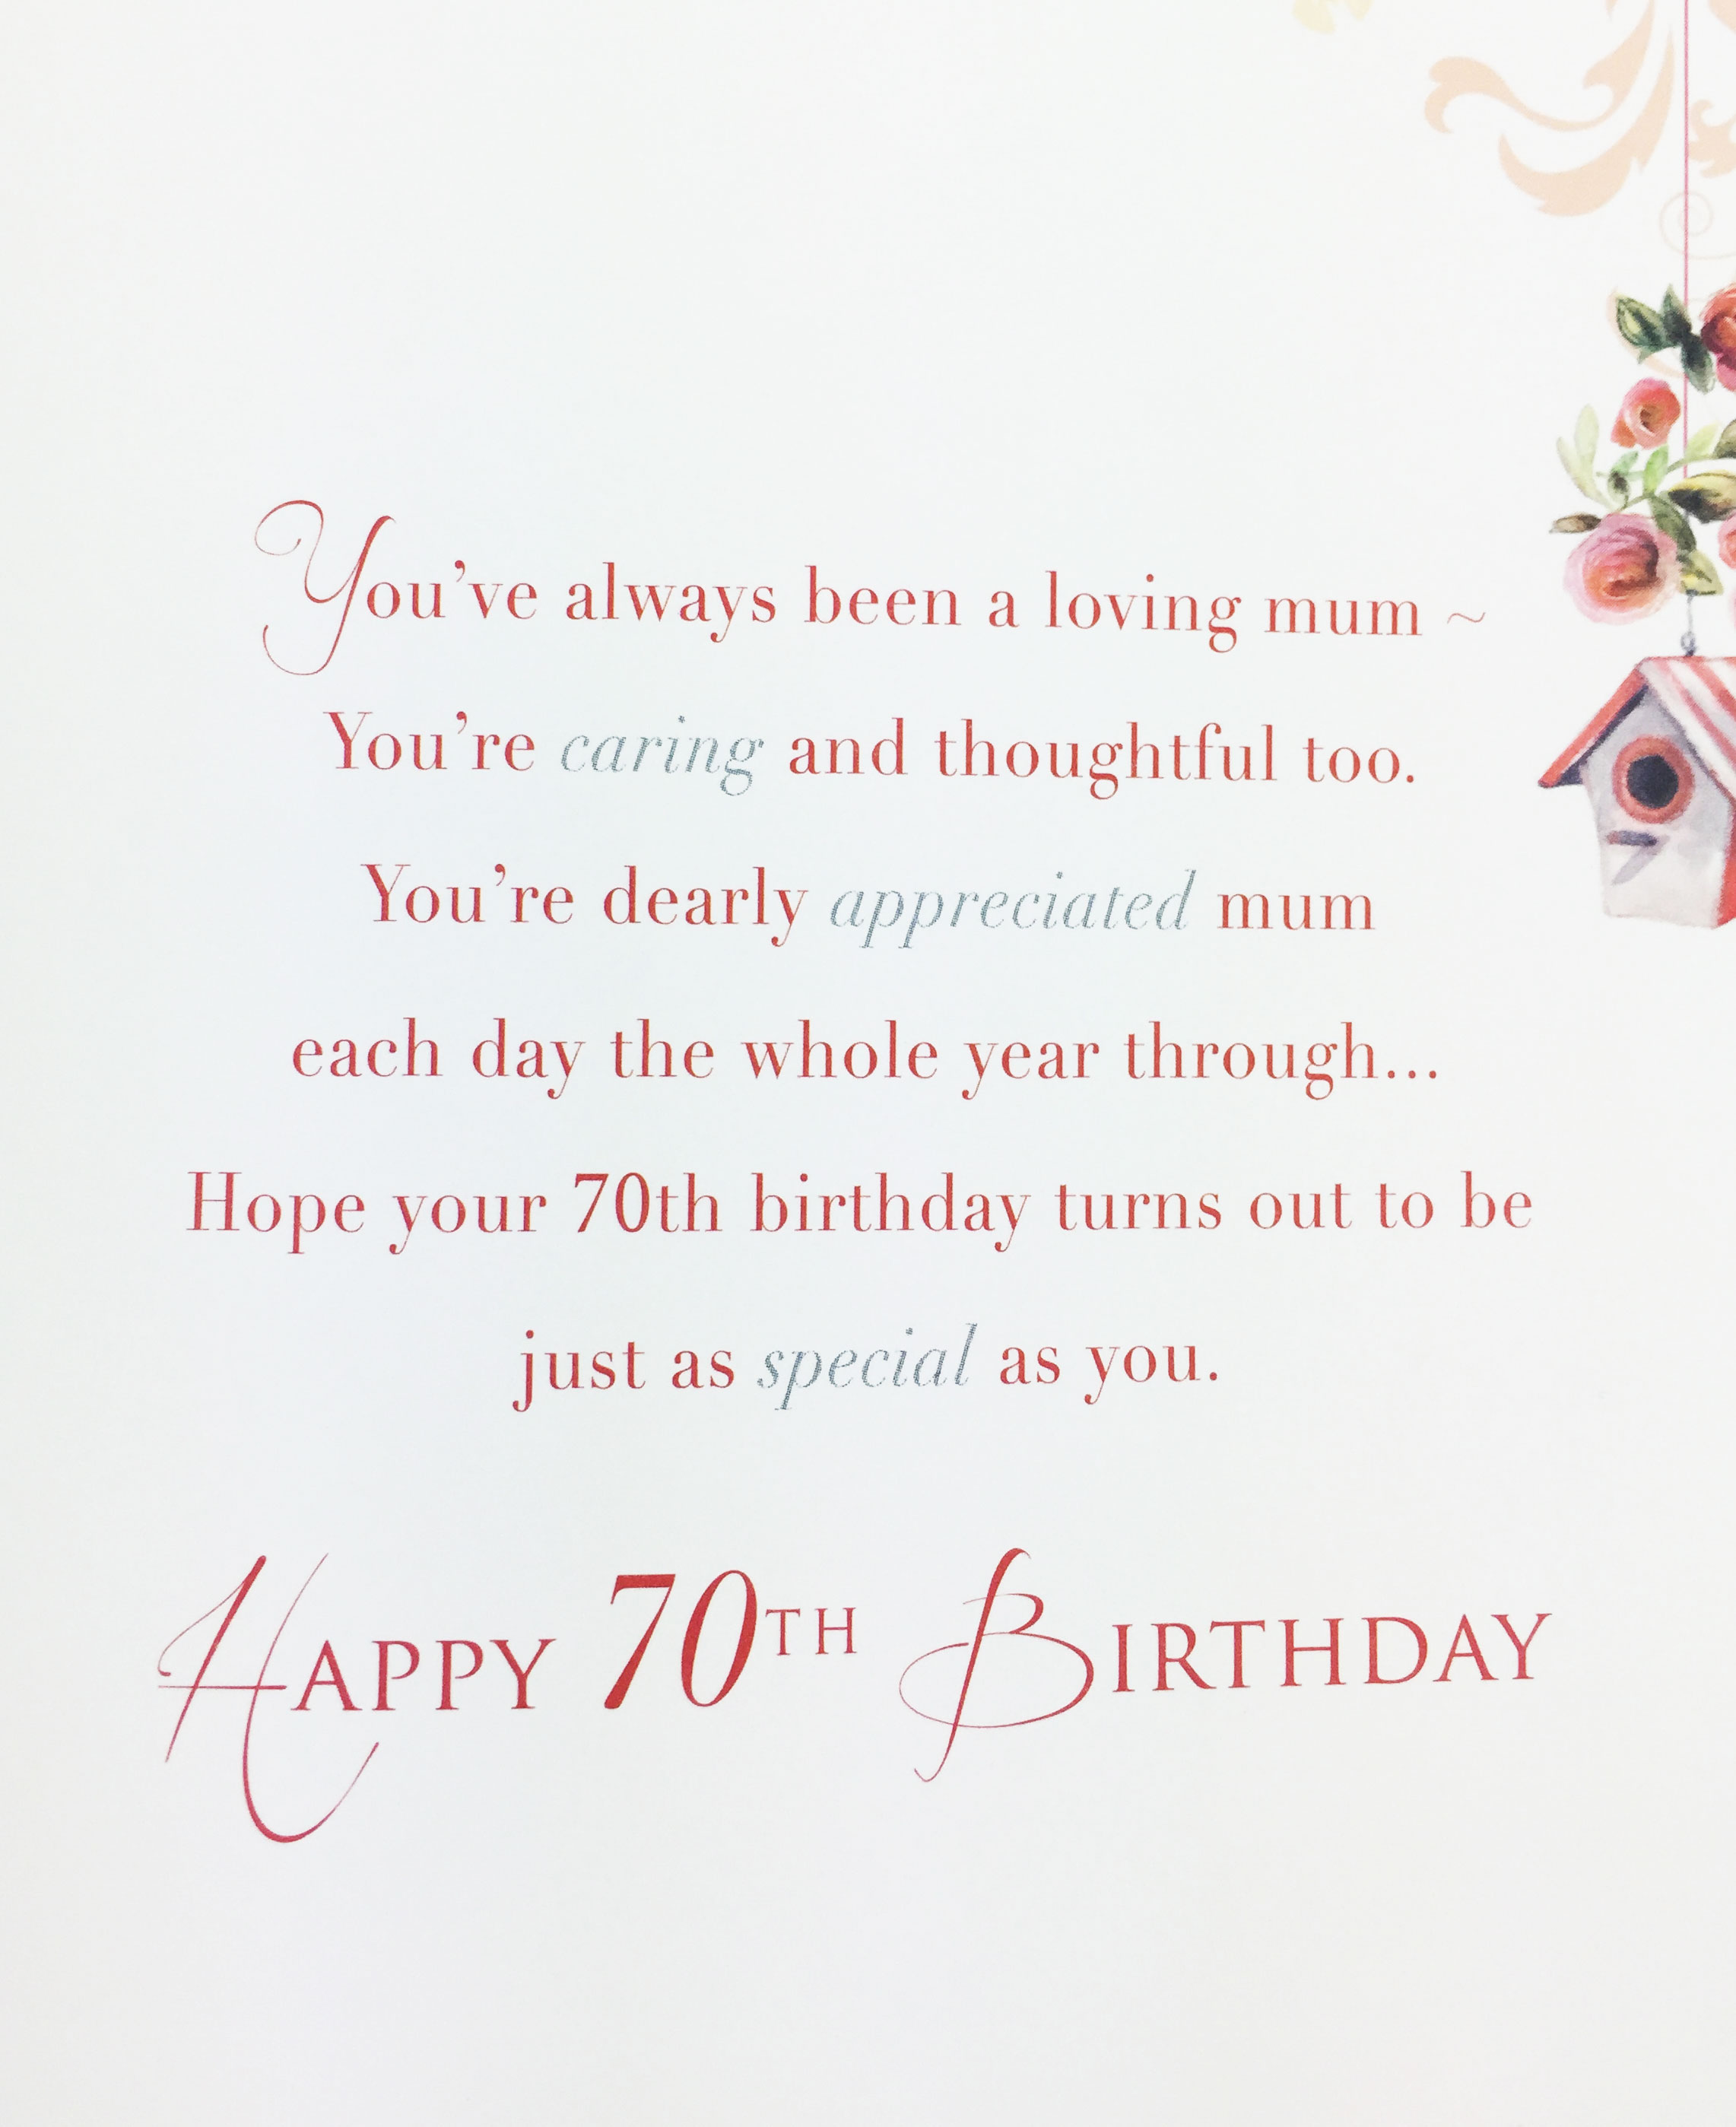 Birthday Wishes For 70th Card 70Th Messages Cards